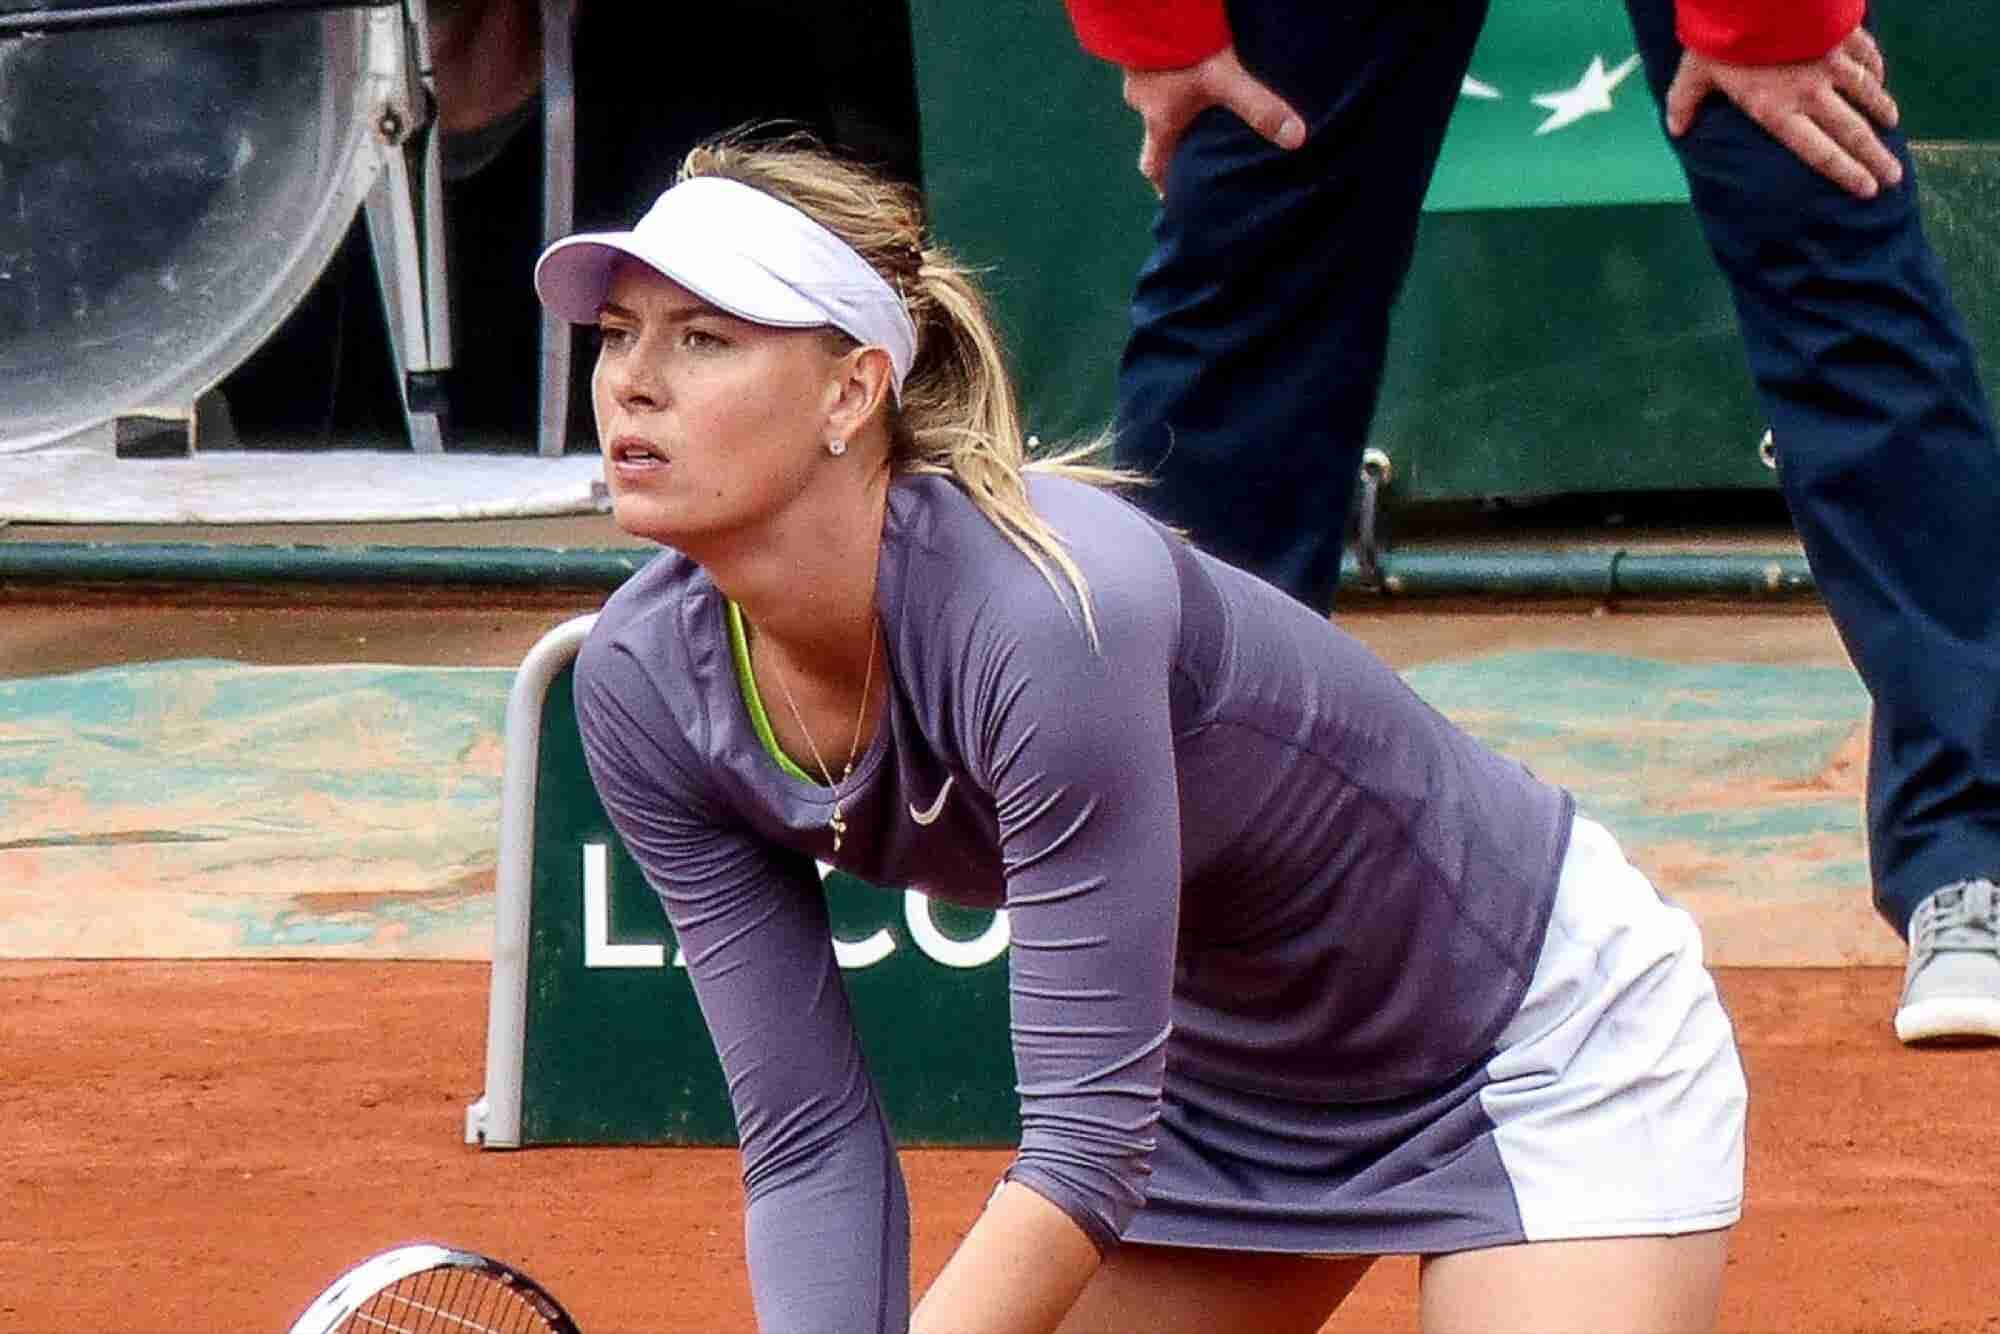 Nike Drops Maria Sharapova After She Fails Drug Test